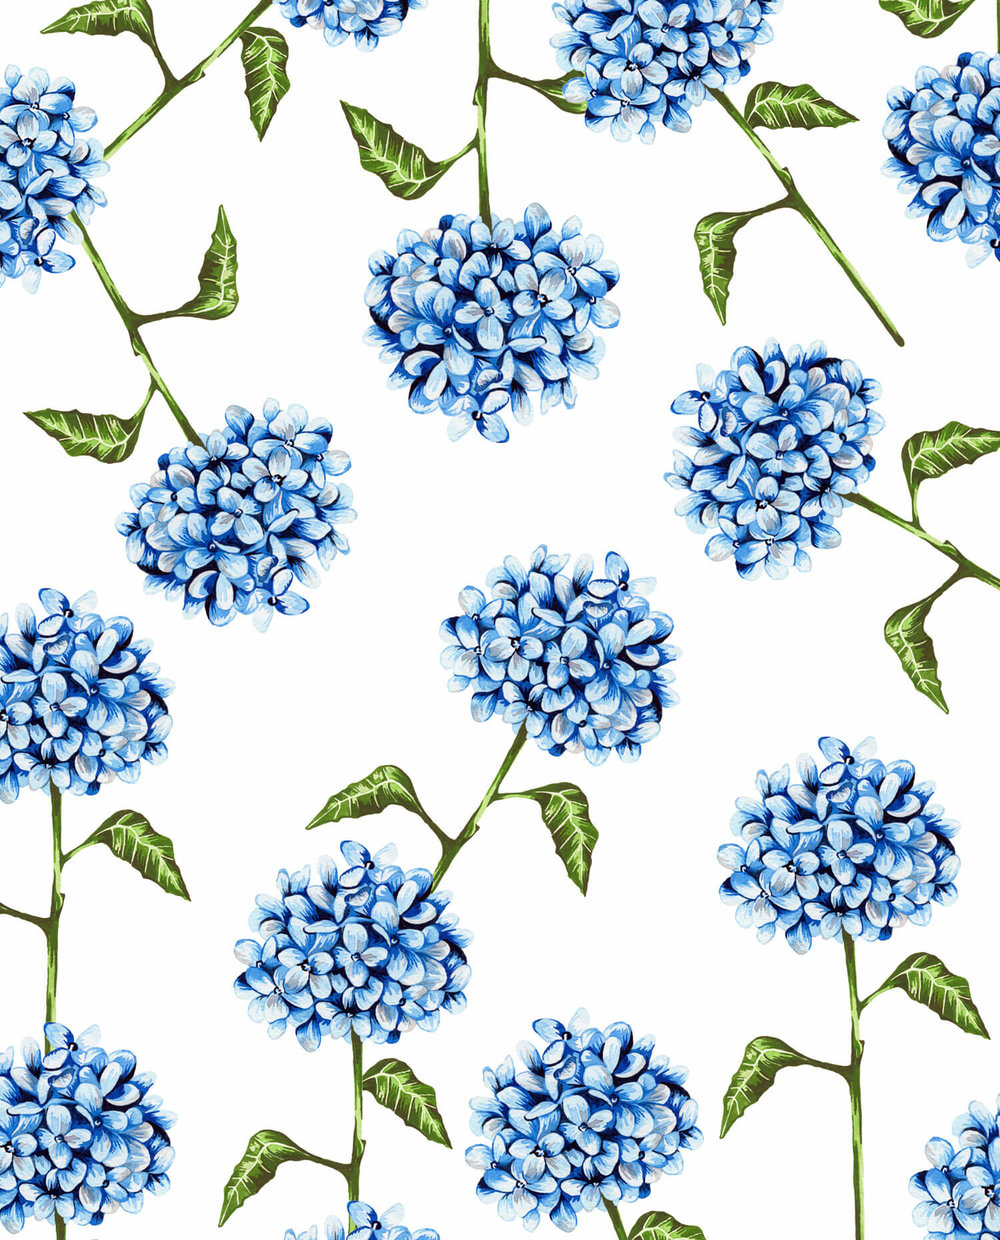 Sophie-Brabbins_Hydrangea-All-Over.jpg